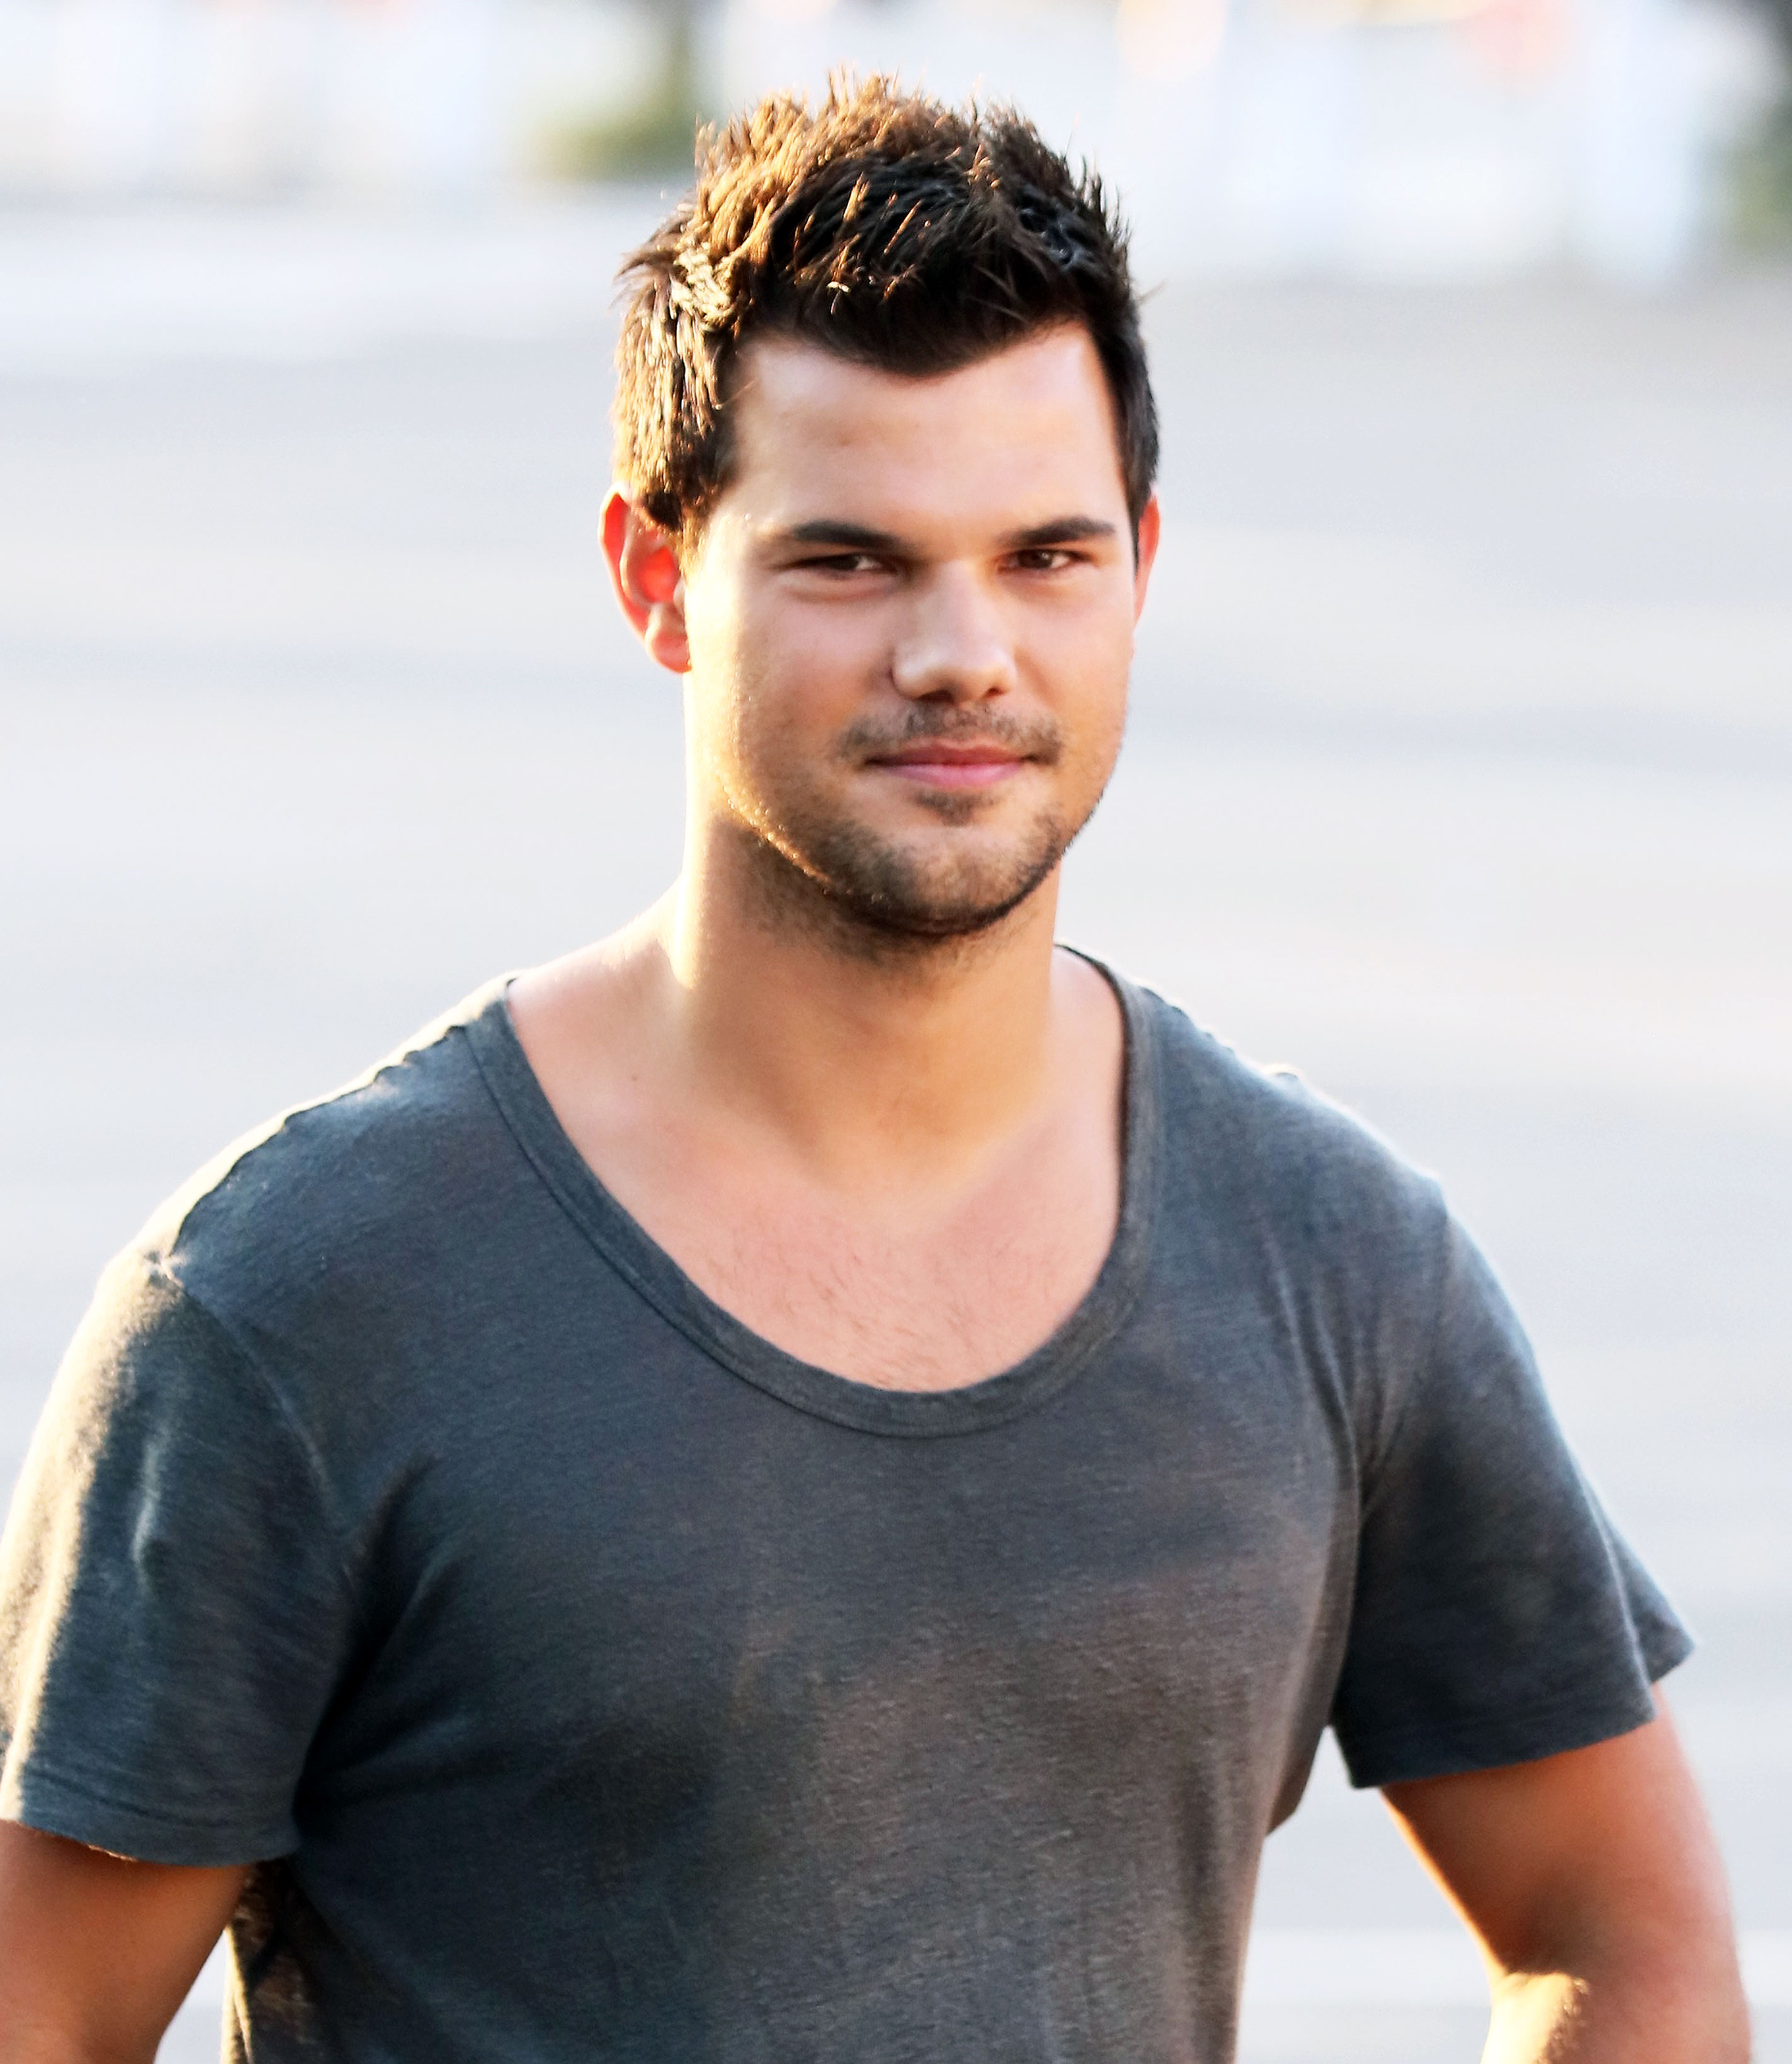 Taylor Lautner Dyed His Hair for 'Scream Queens': Pic Taylor Lautner